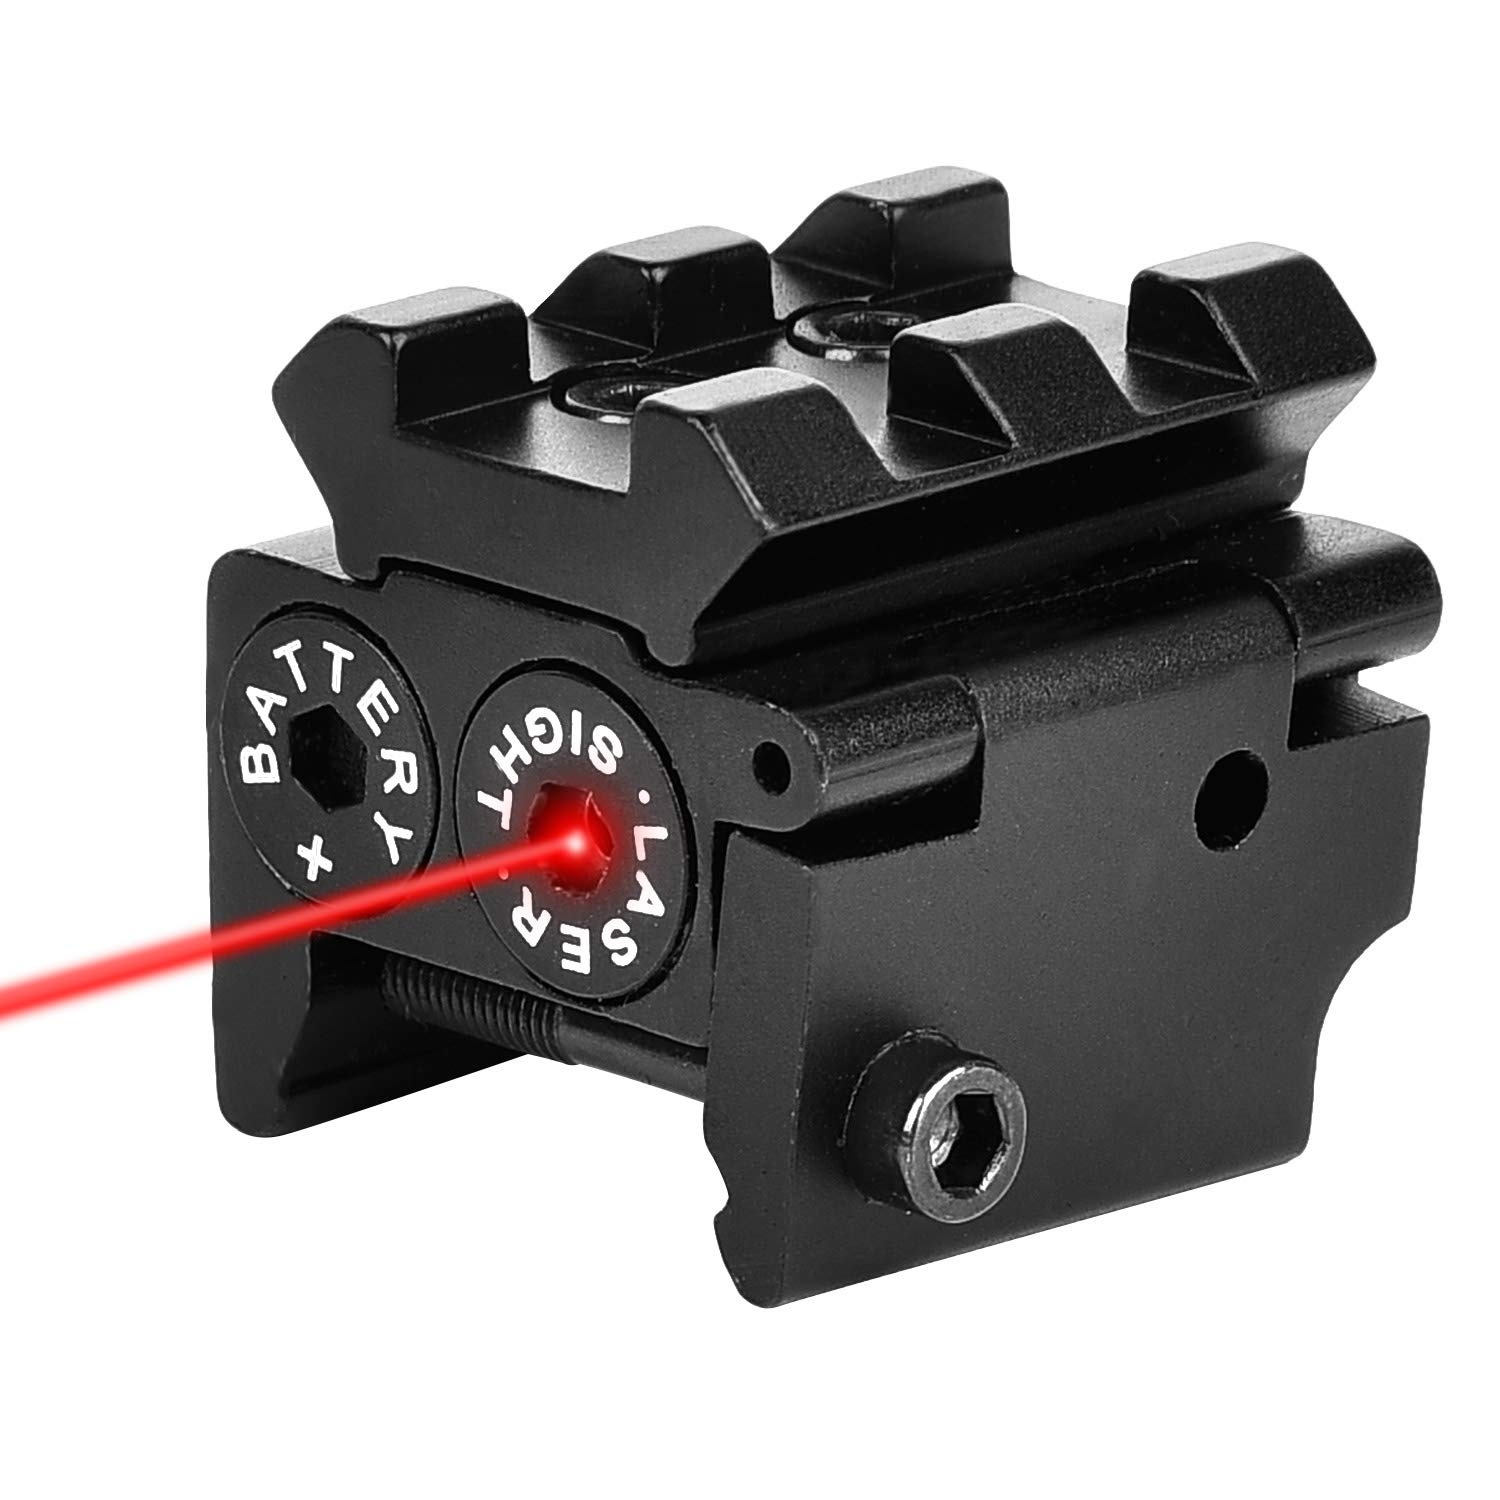 EZshoot Mini Red Laser Red Dot Gun Sight with Rail Mount for Pistol Handgun Low Profile Rifle with Two Sets of Batteries by EZshoot